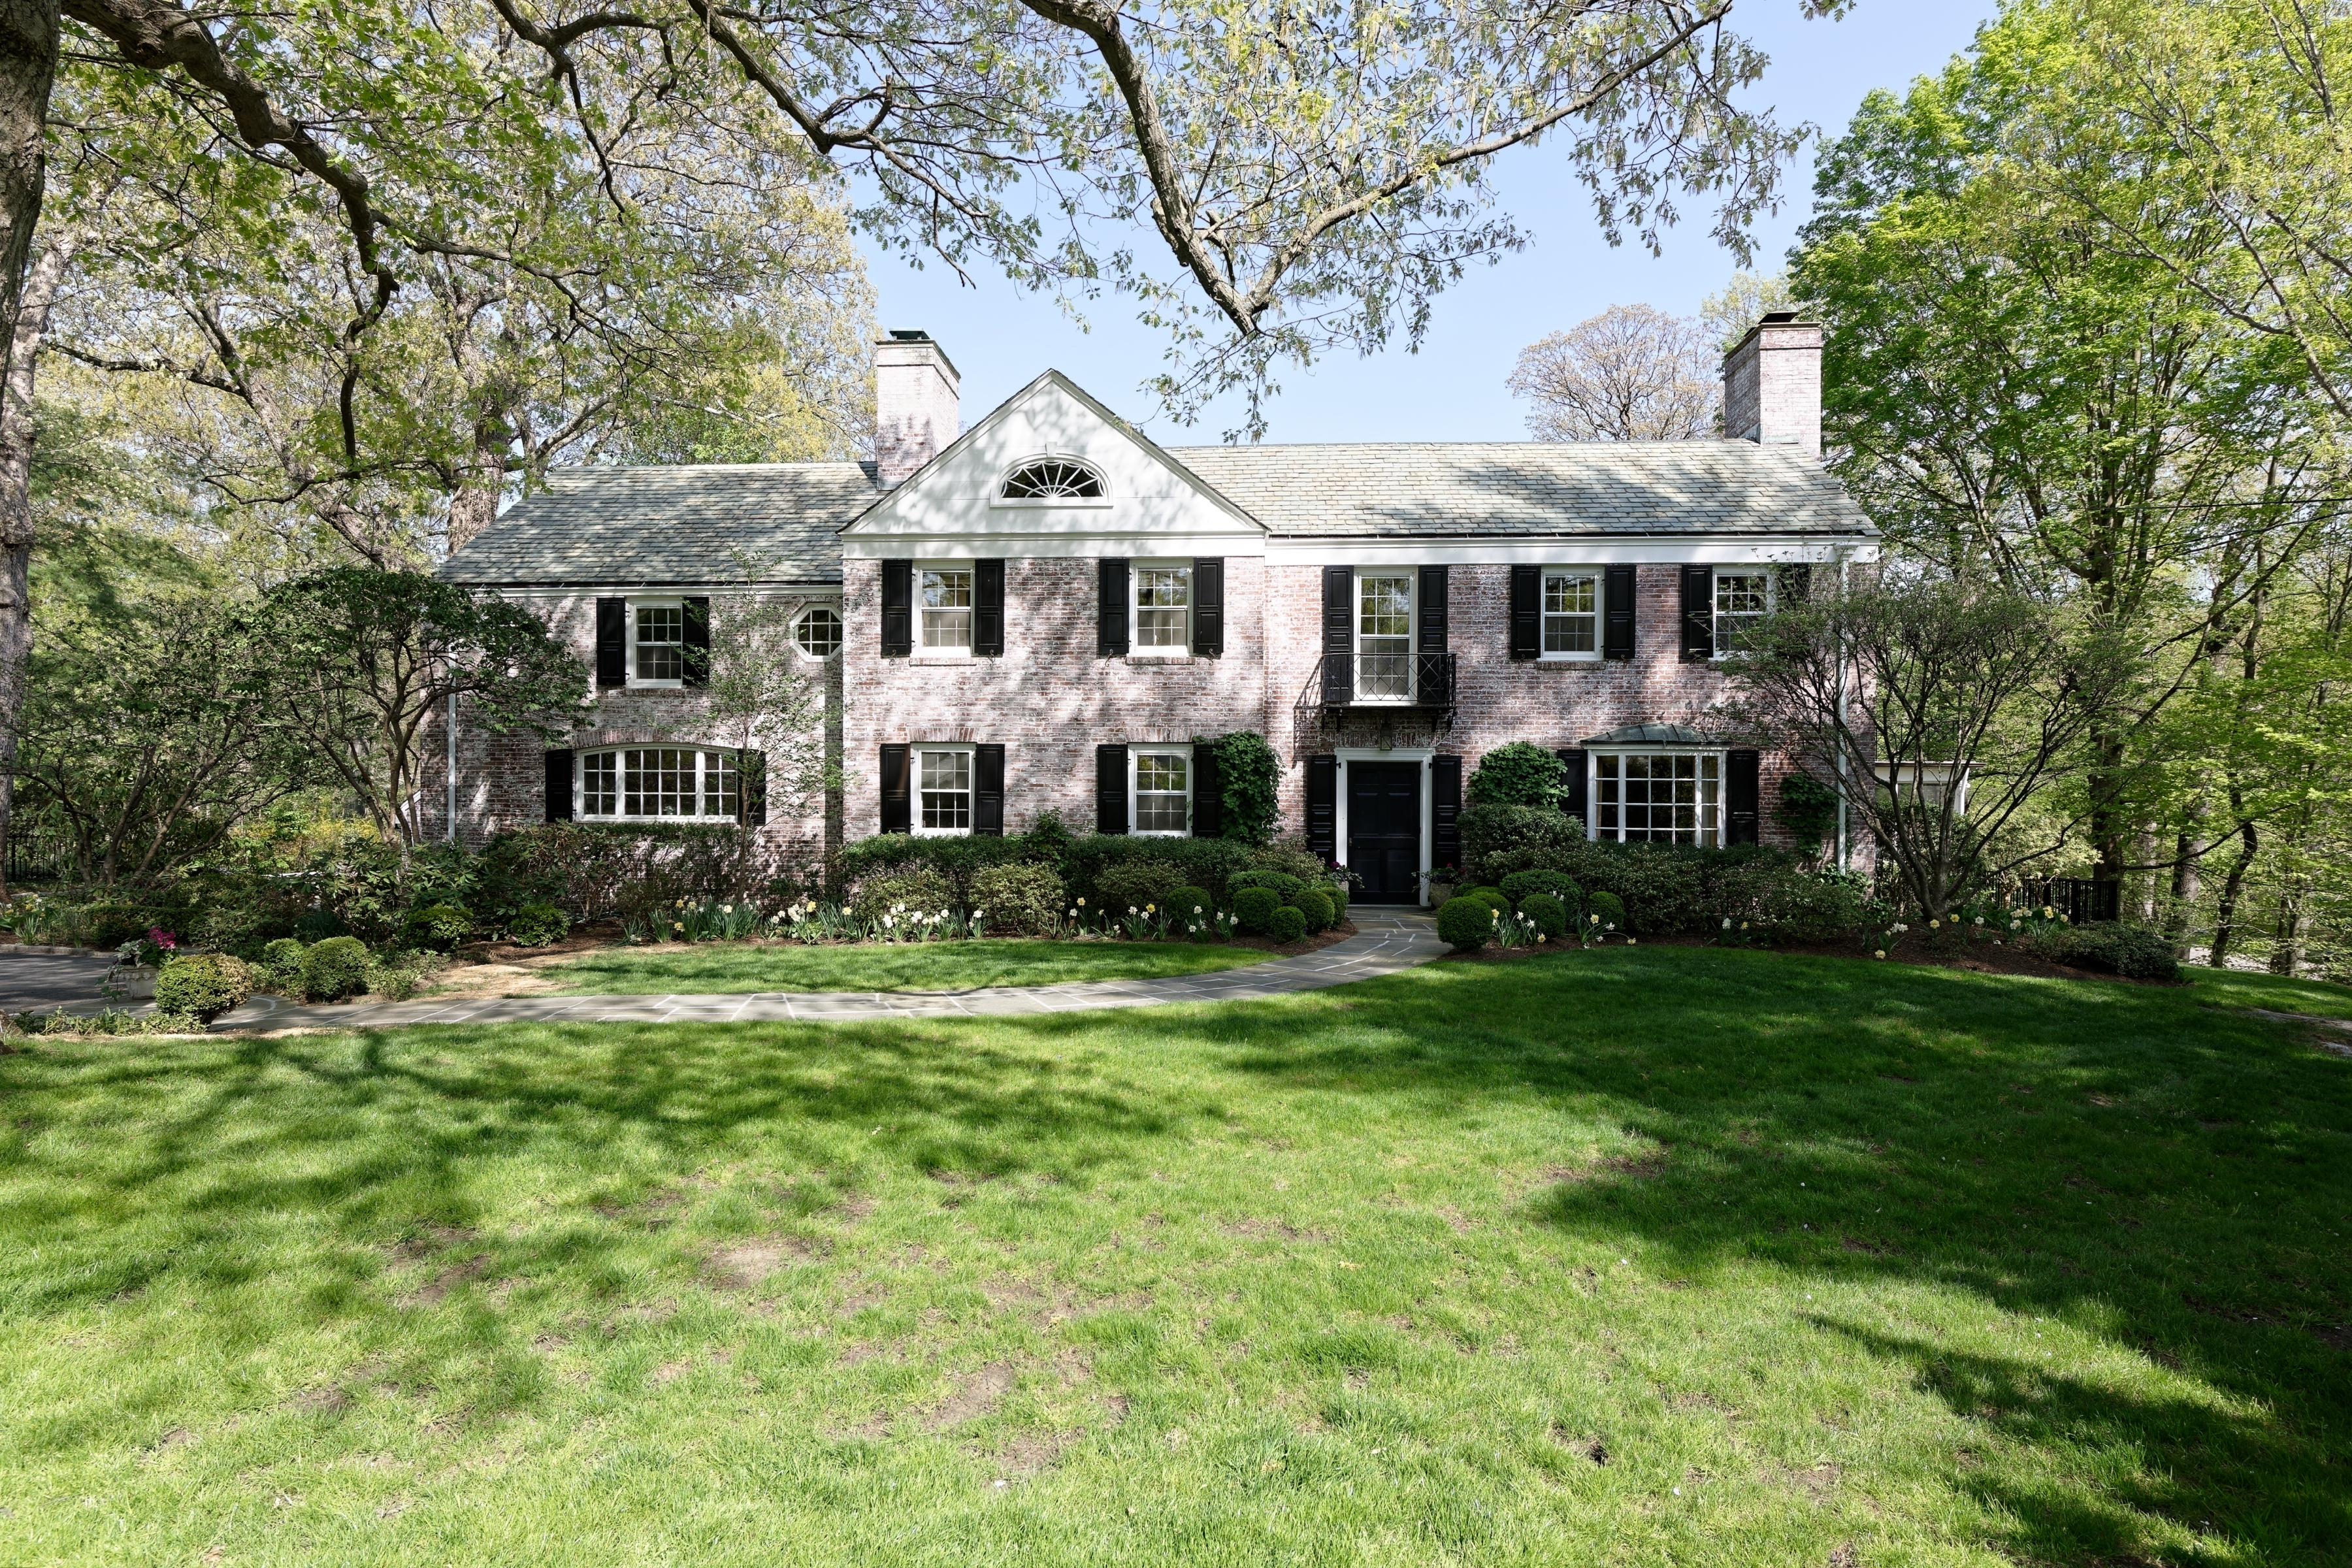 Single Family Home for Sale at 7 Franklin Lane Harrison, New York 10528 United States